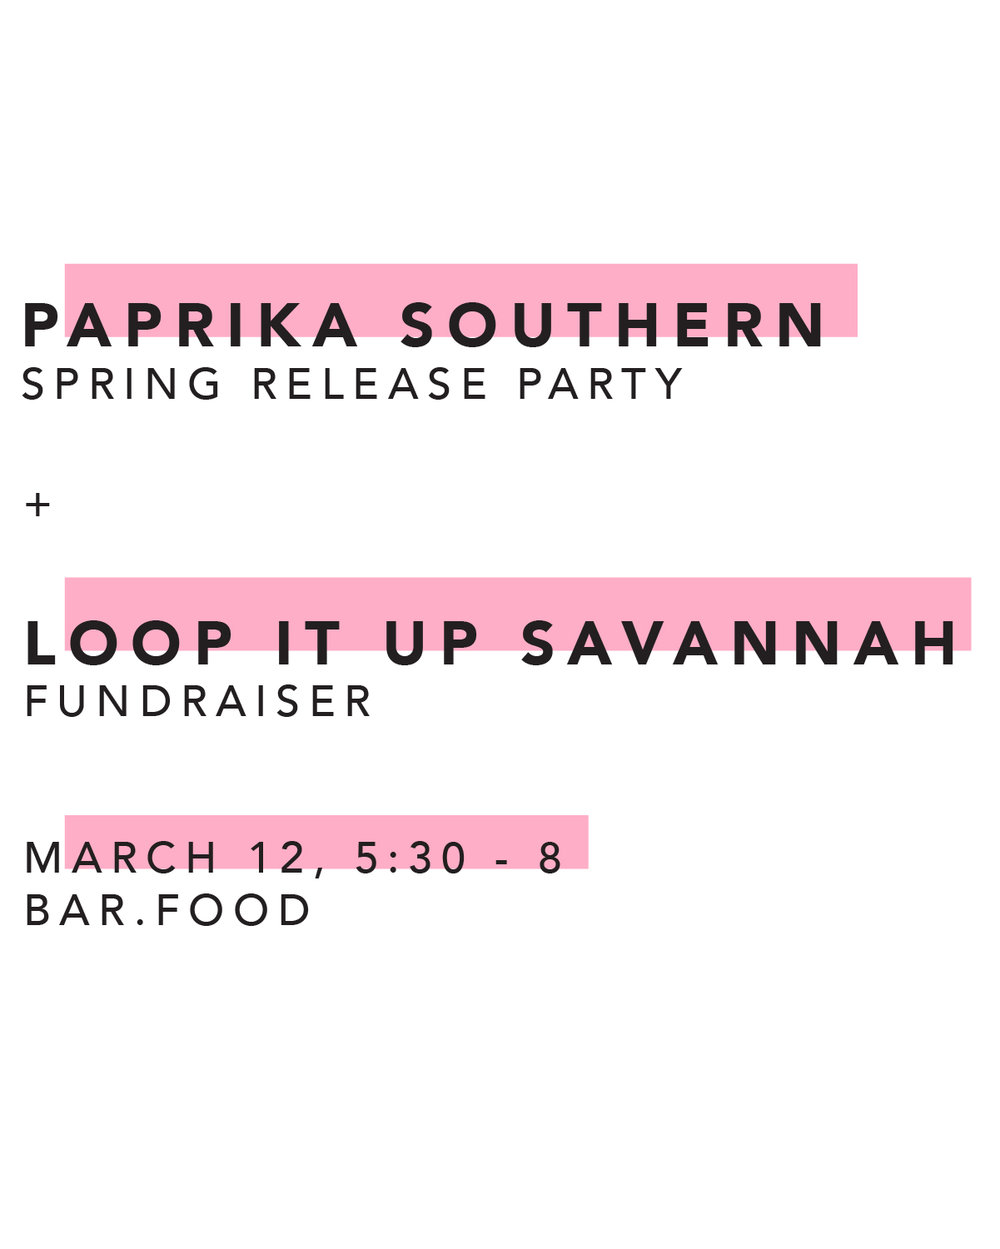 Paprika Southern Spring 2019 Release Party